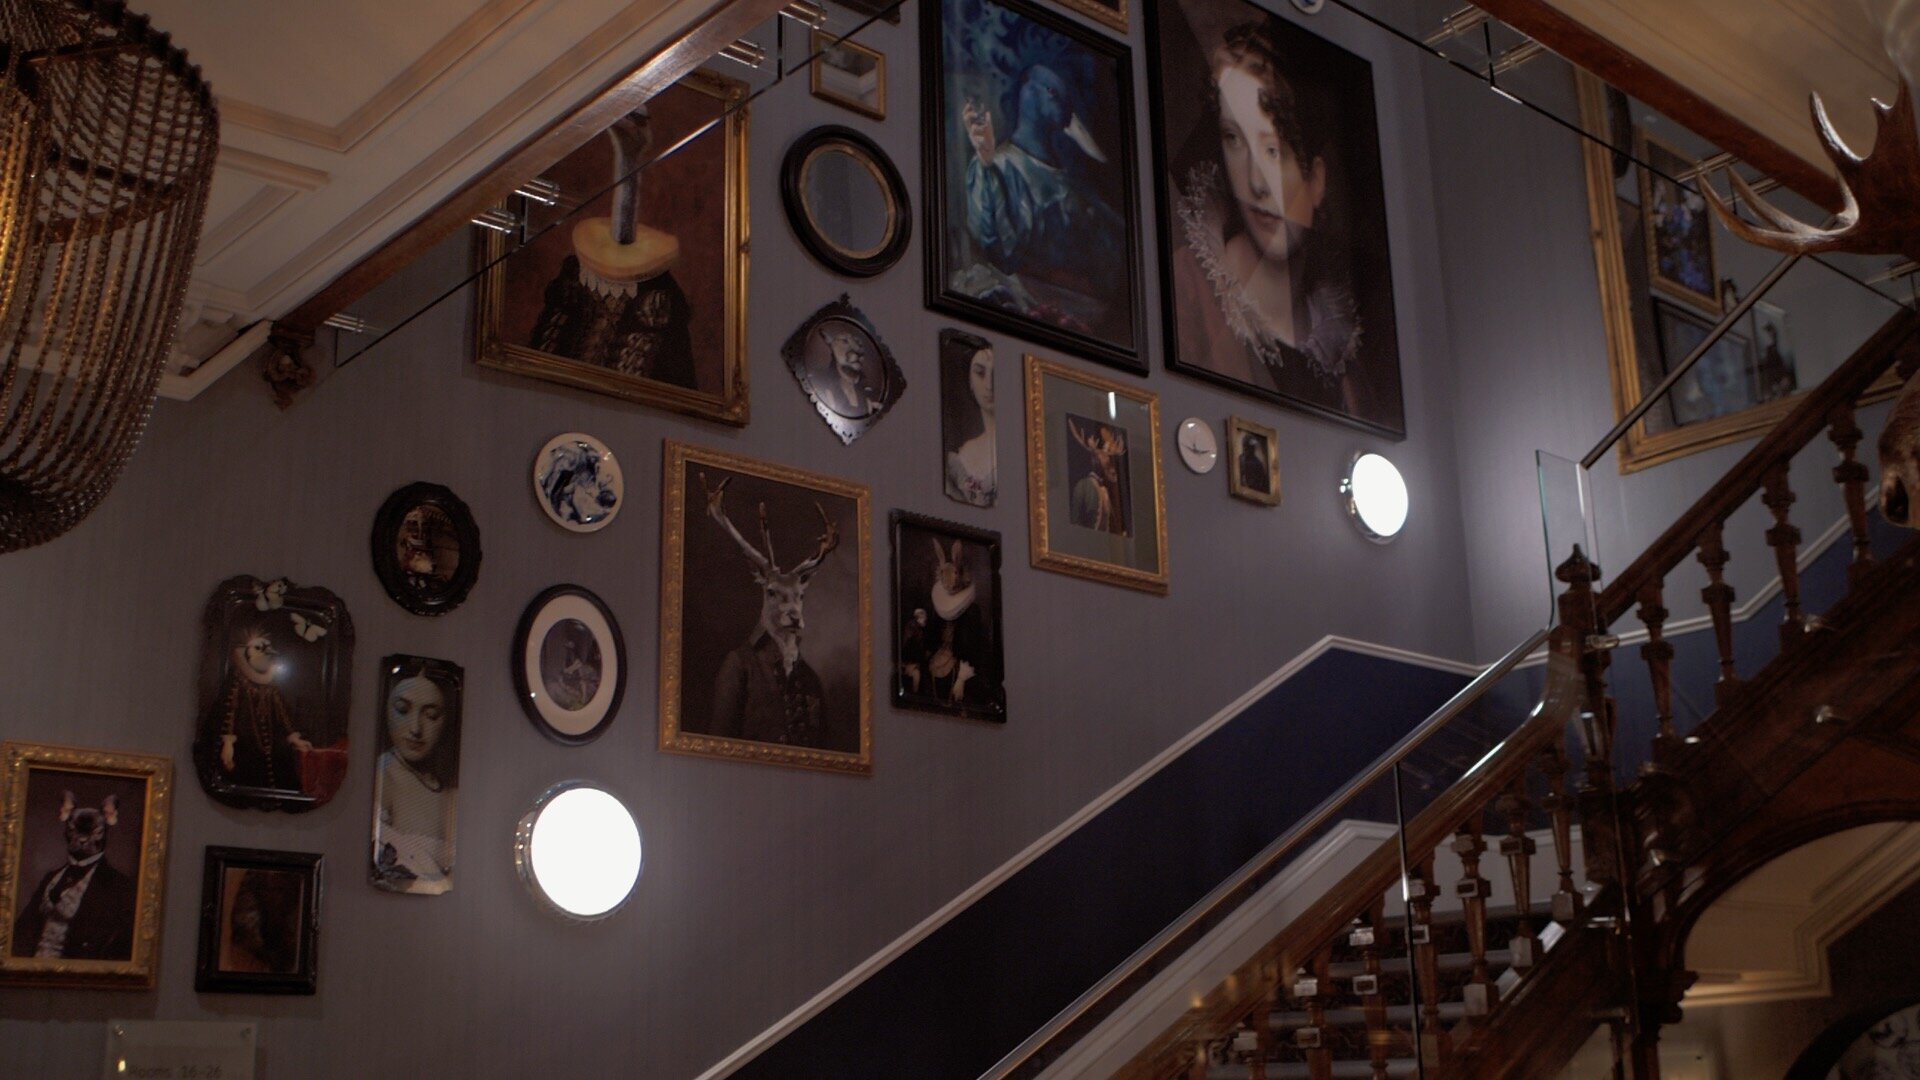 The staircase in the 'Oddfellows on the Park' hotel that features many pieces of artwork. All the art is very quirky with images of animals wearing human clothing and accessories.